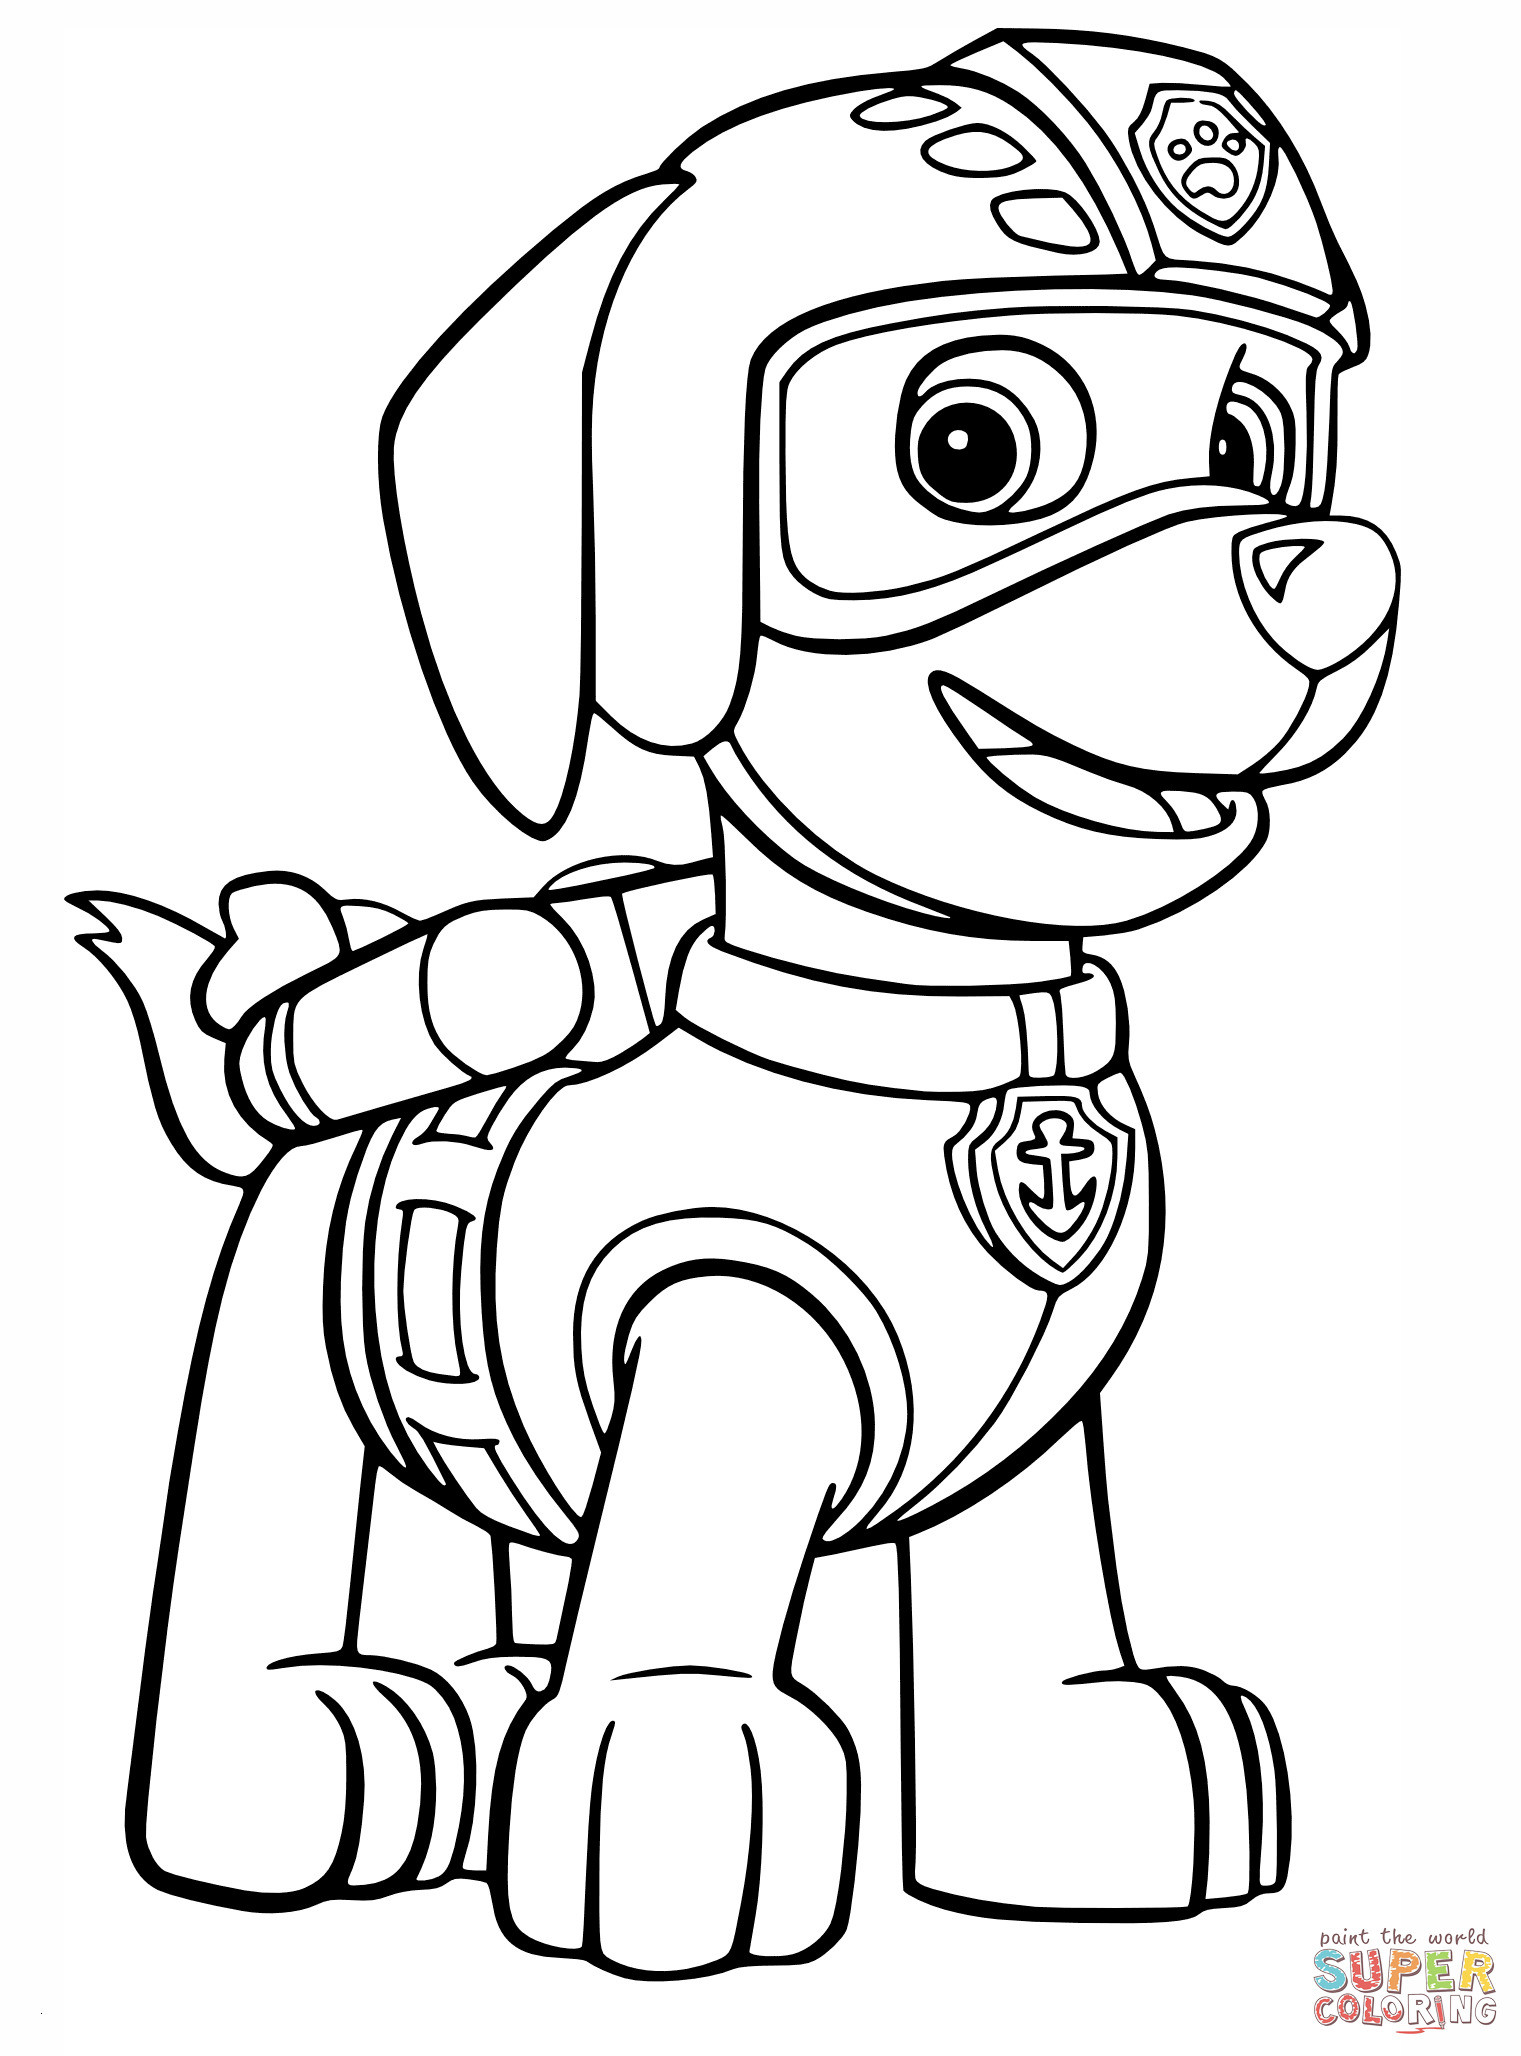 Paw Patrol Ausmalen Das Beste Von Paw Patrol Zuma Coloring Pages 01 Coloring Pages Pinterest Best Bild